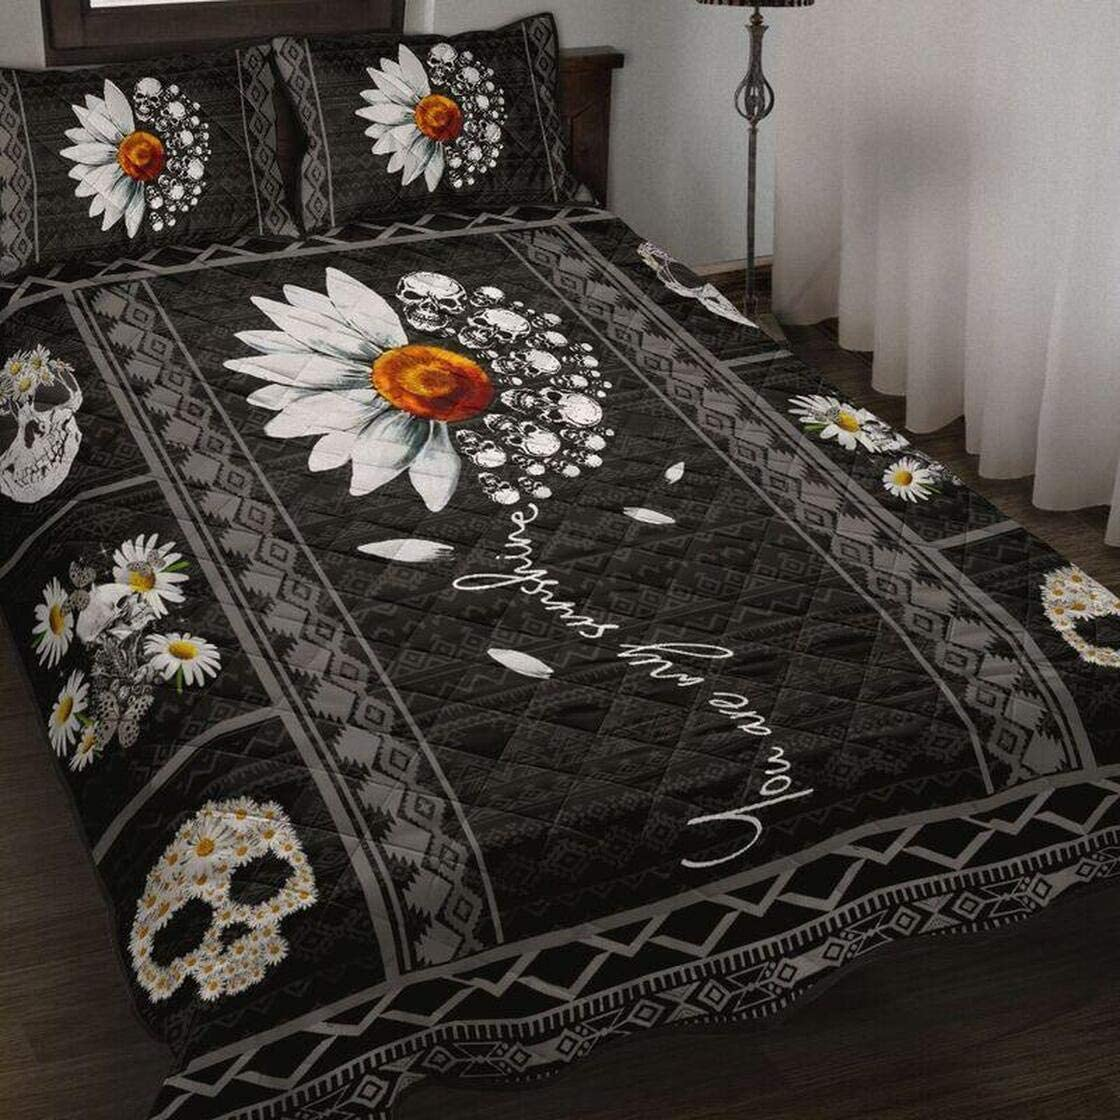 Personalized Skull 70% OFF Outlet Daisy Quilt Bedding Boys Gi Set High quality Kids Birthday